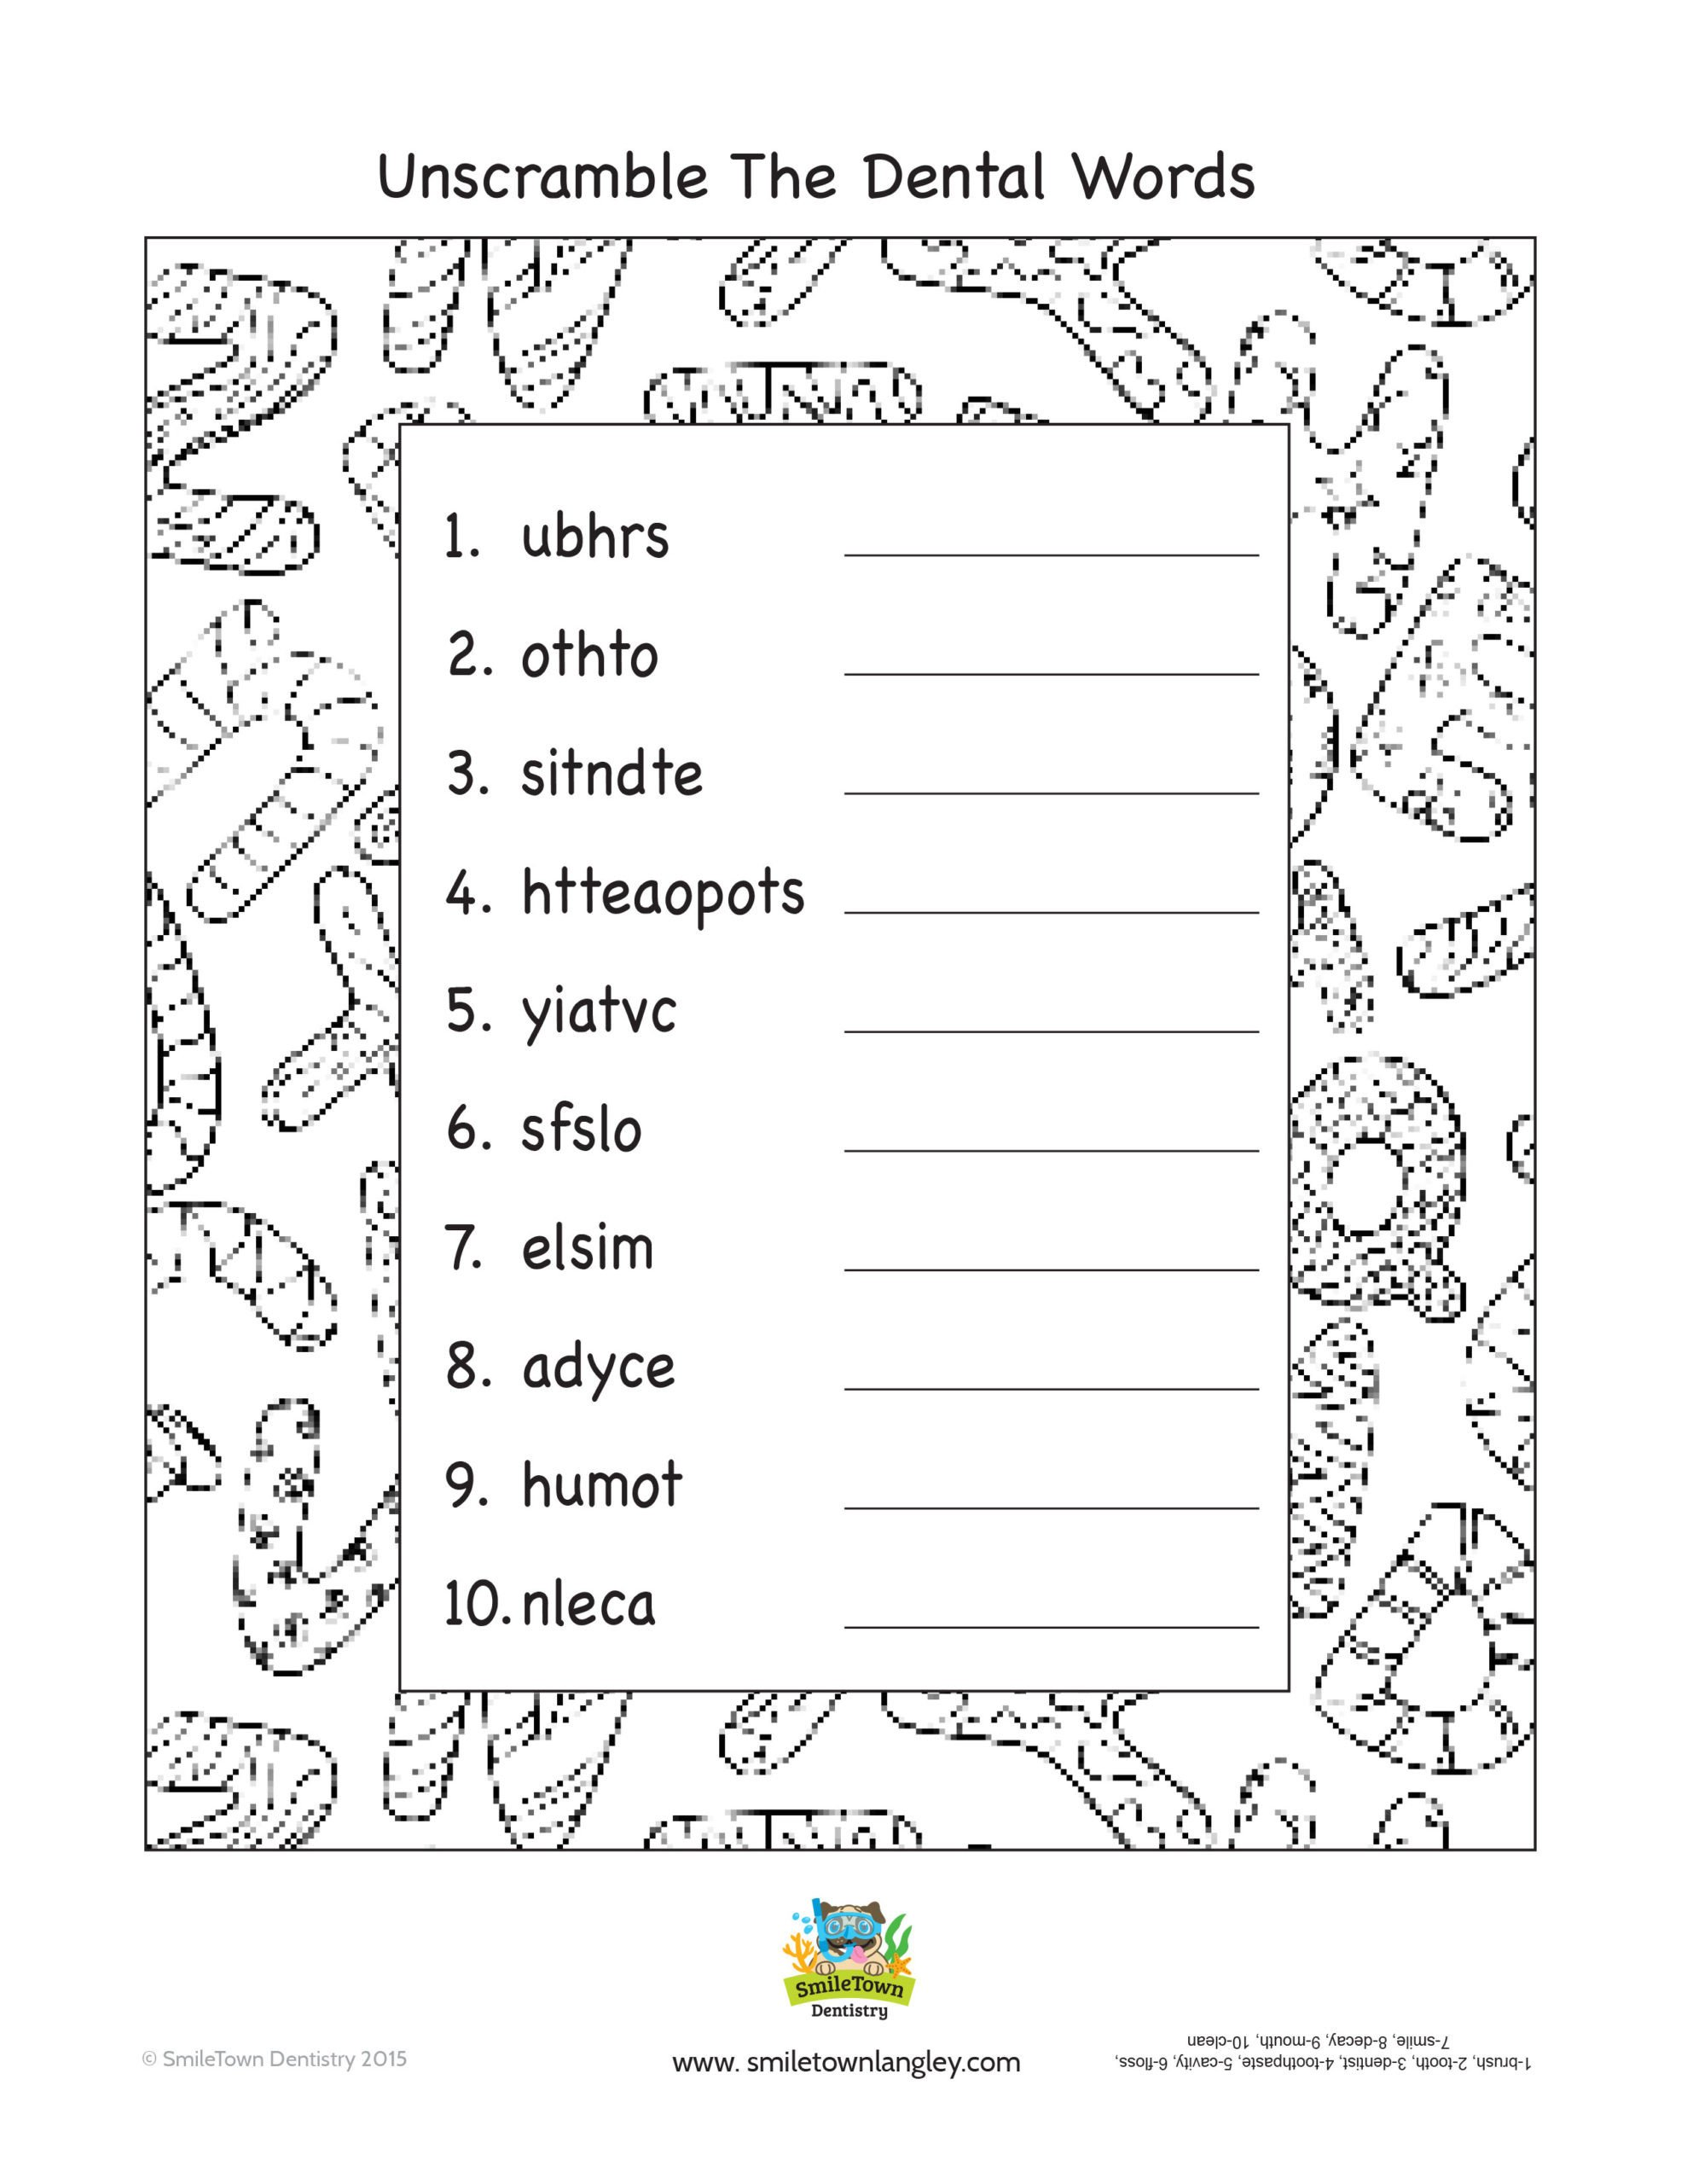 smile town langley kids activity book free sheets printable for asaph in the bible fire safety worksheets scaled